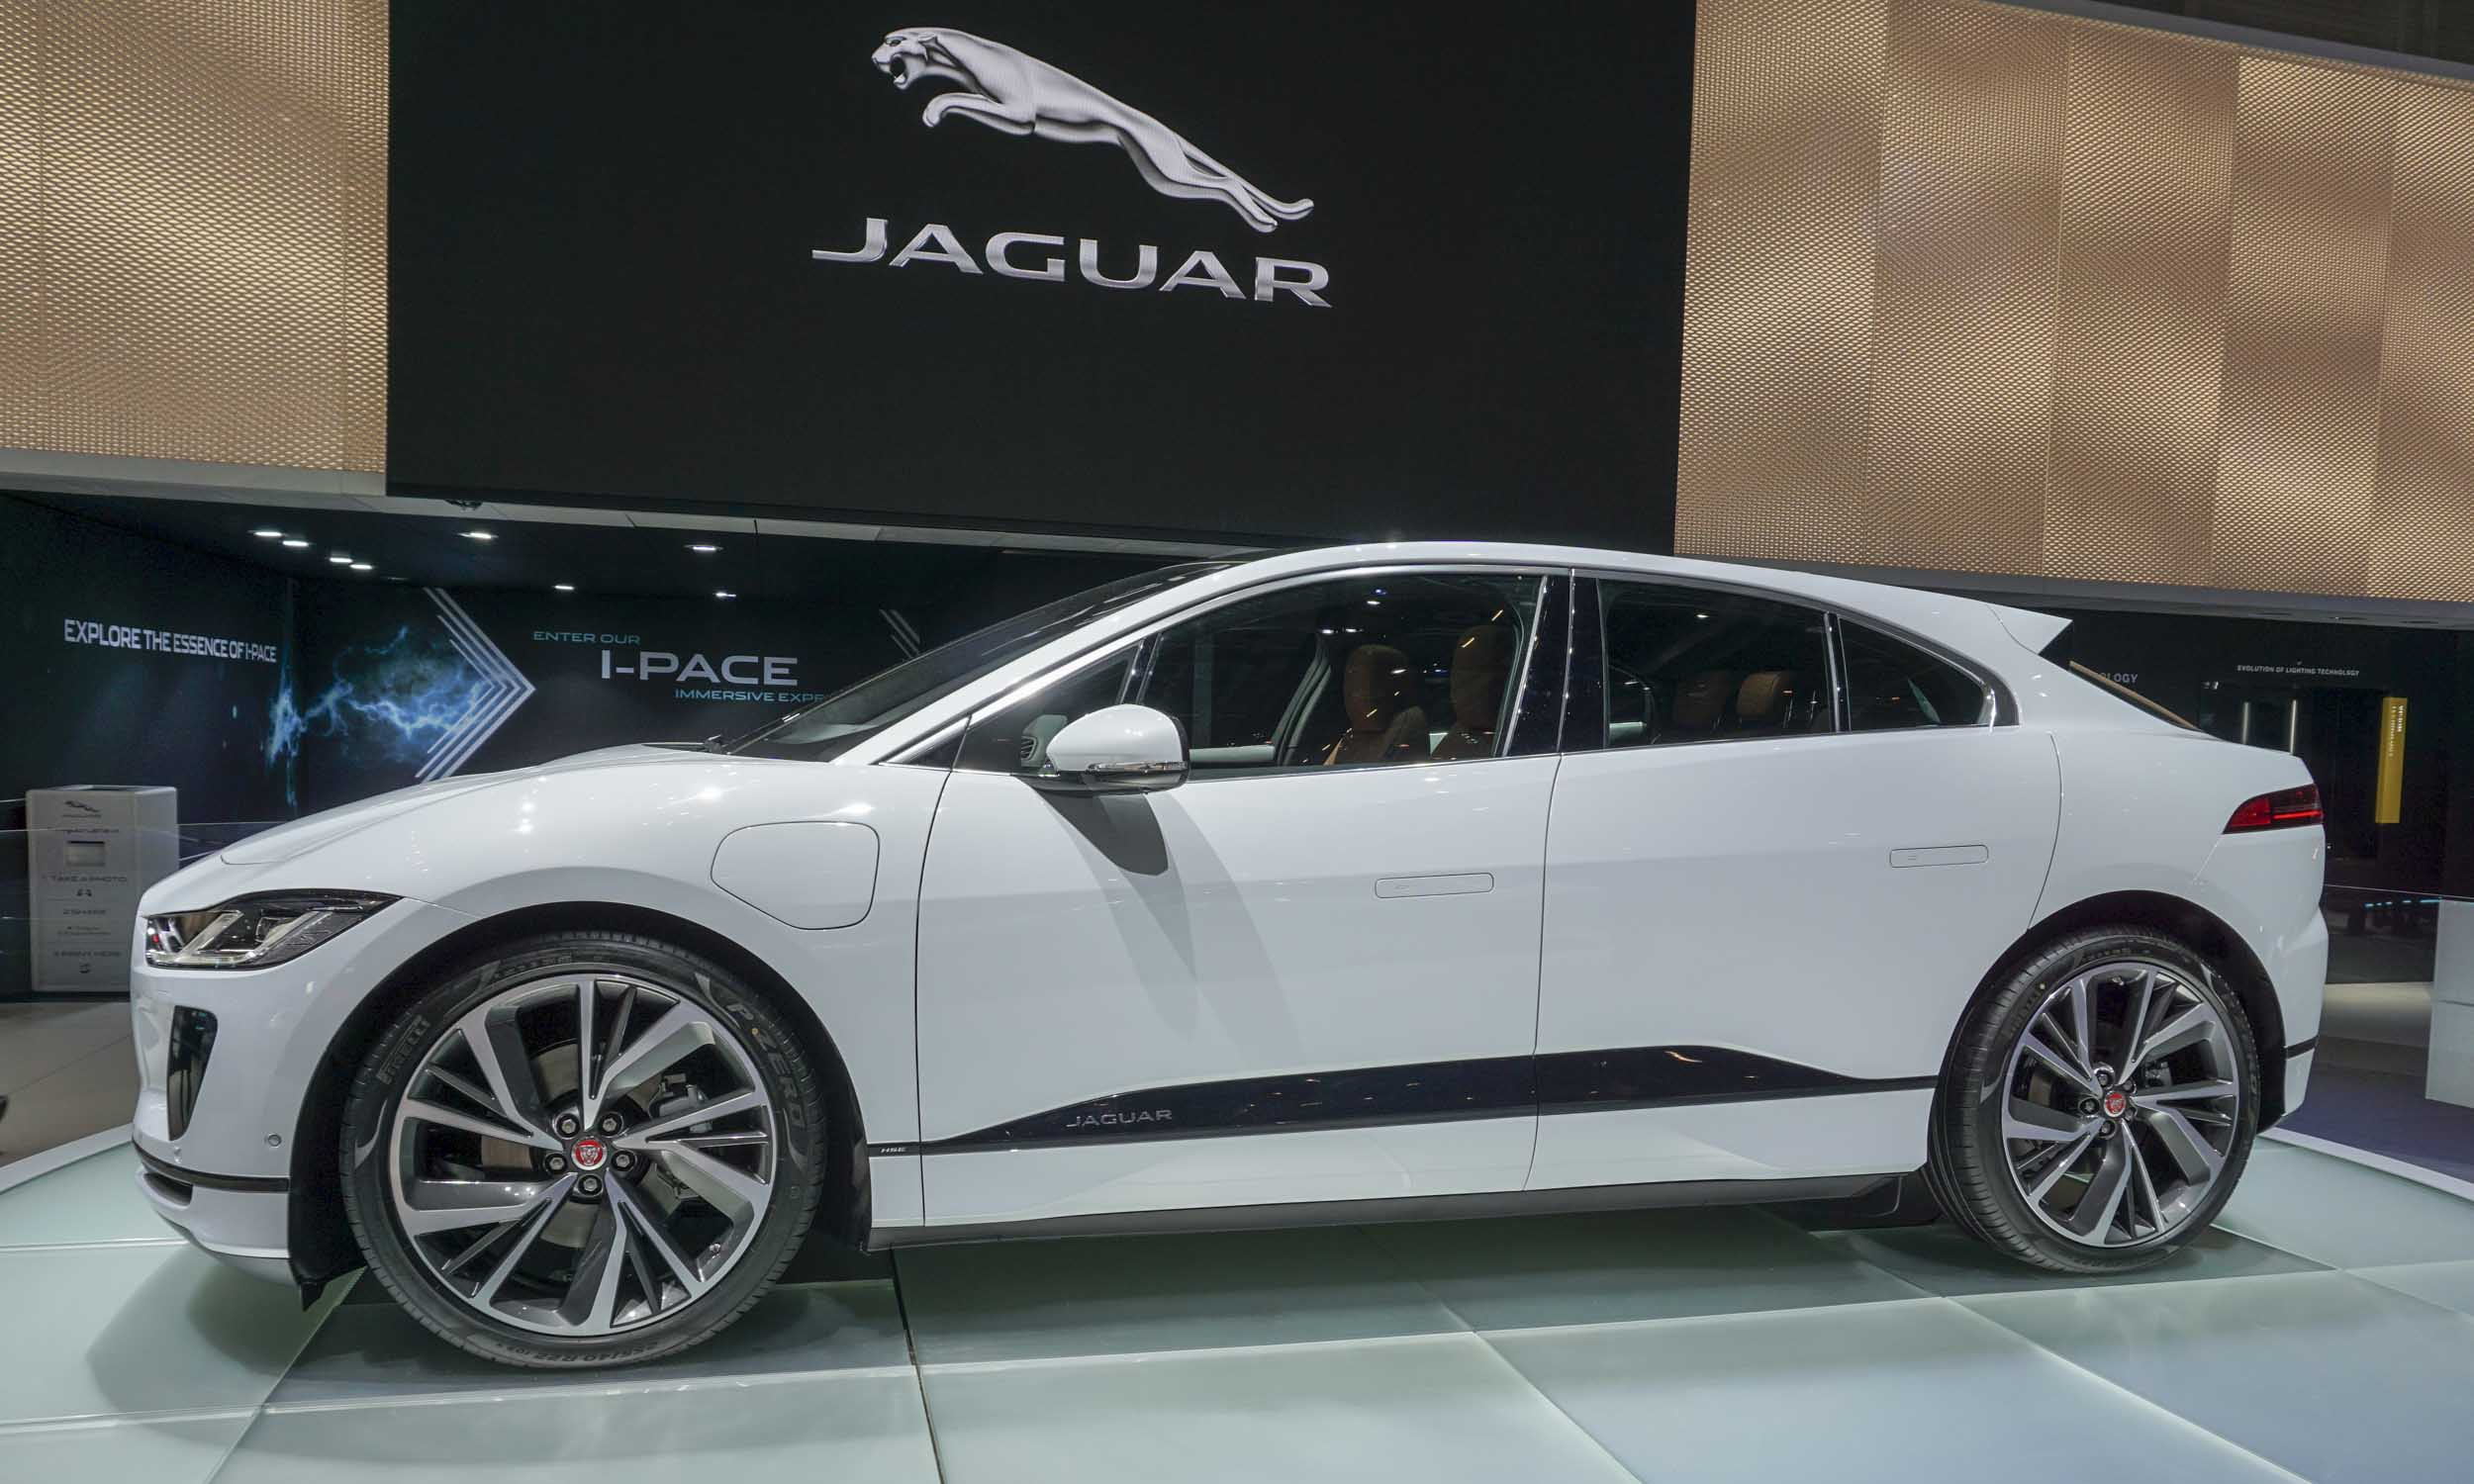 testing cars pace h counting car miles los electric million dealership and news jaguar i angeles